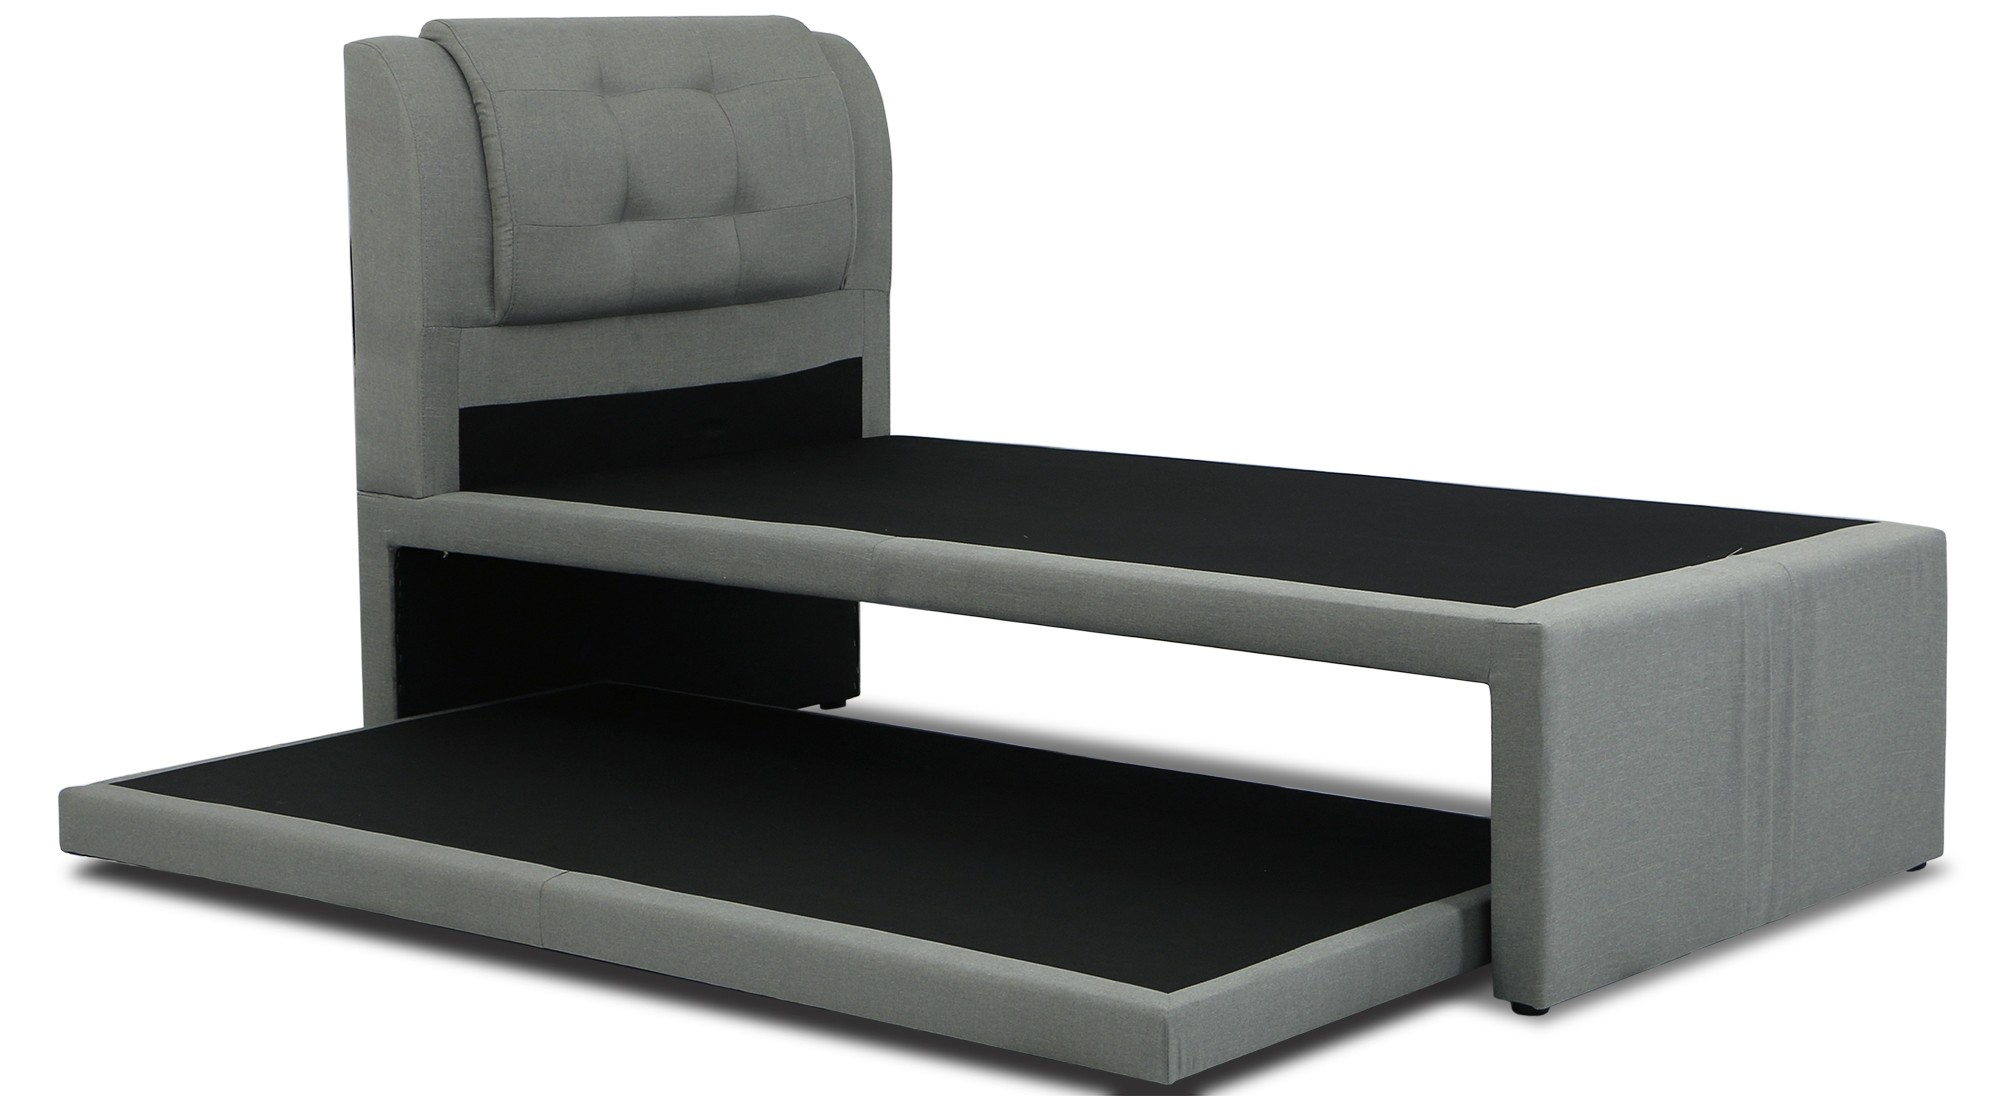 Neak Fabric 2 In 1 Bed Frame Single Sized Furniture Home Décor Fortytwo